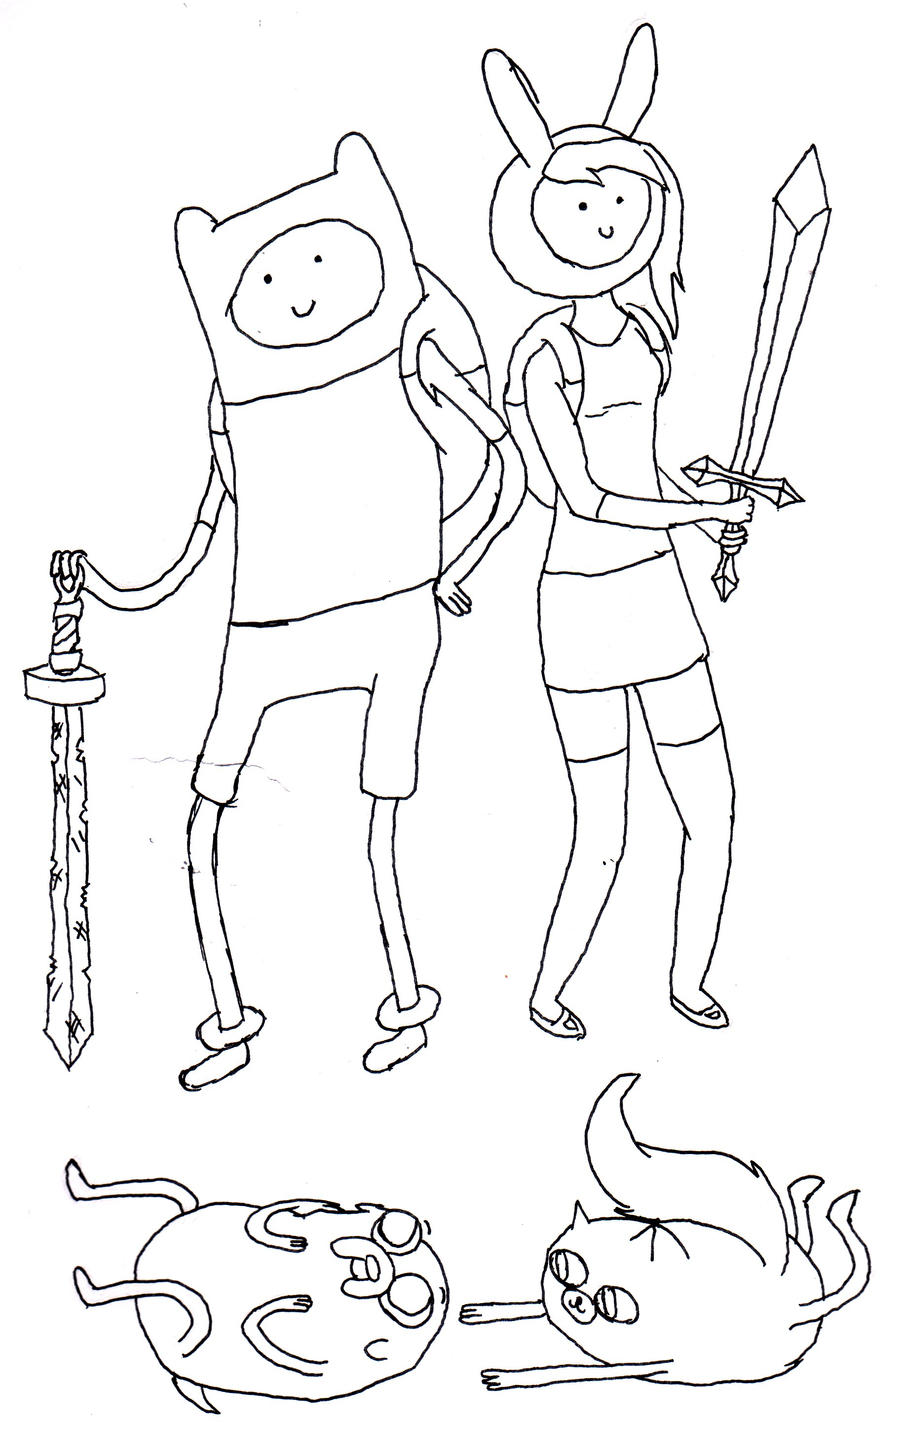 Finn Fionna Jake And Cake Lineart By Snapperboy On Fionna And Cake Coloring Pages